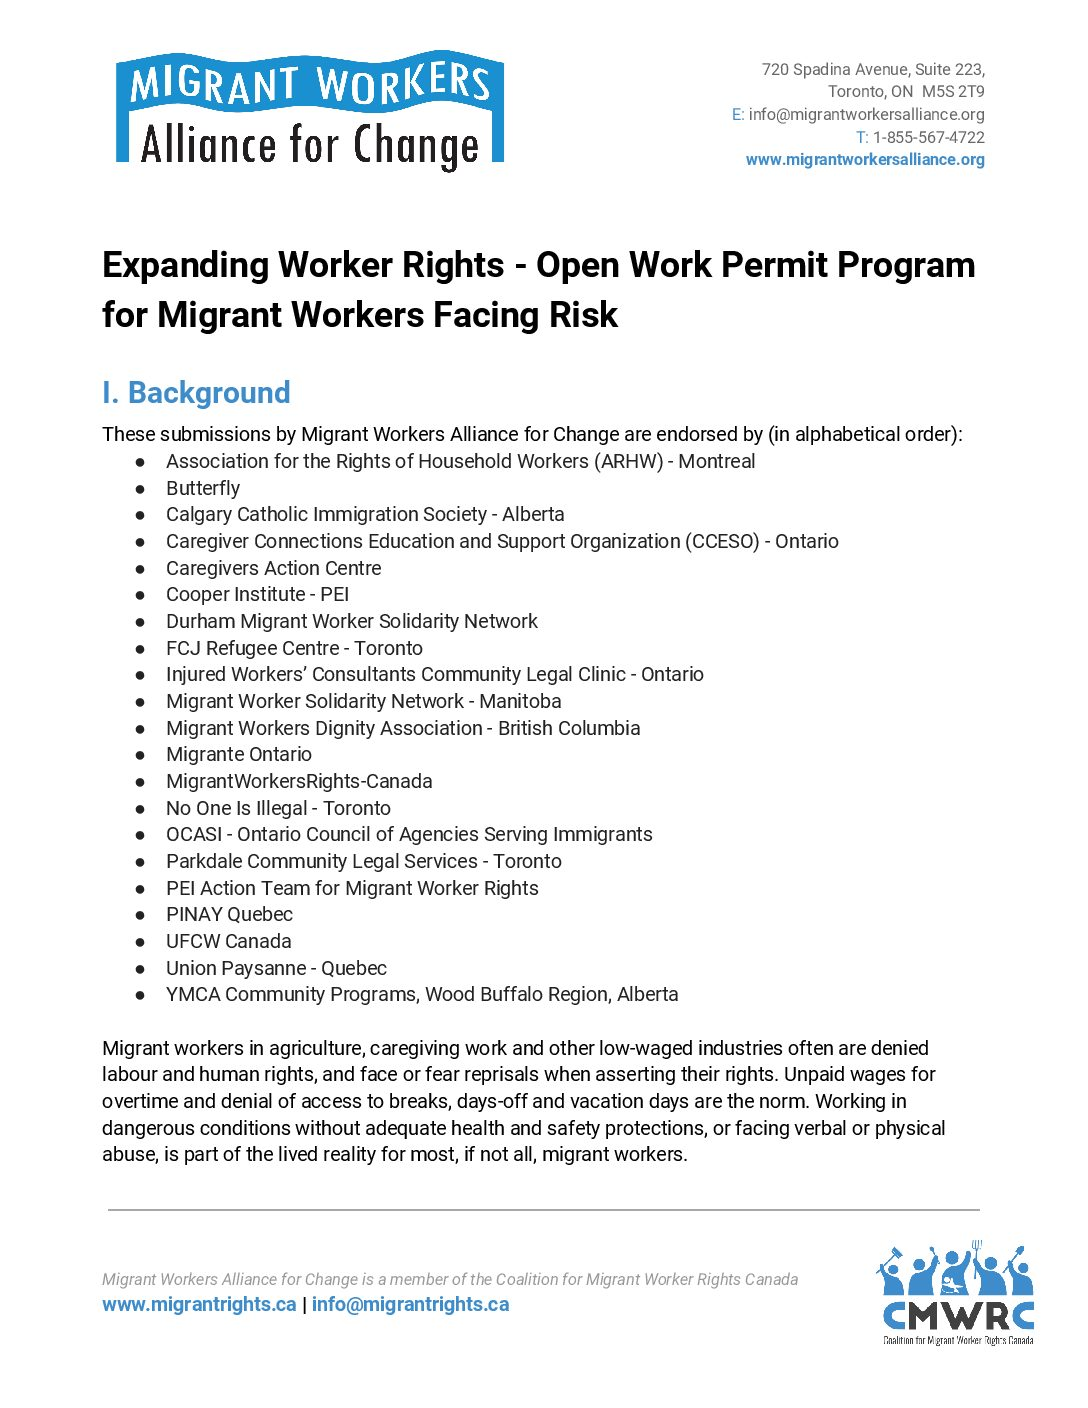 Federal ← Migrant Workers Alliance for Change